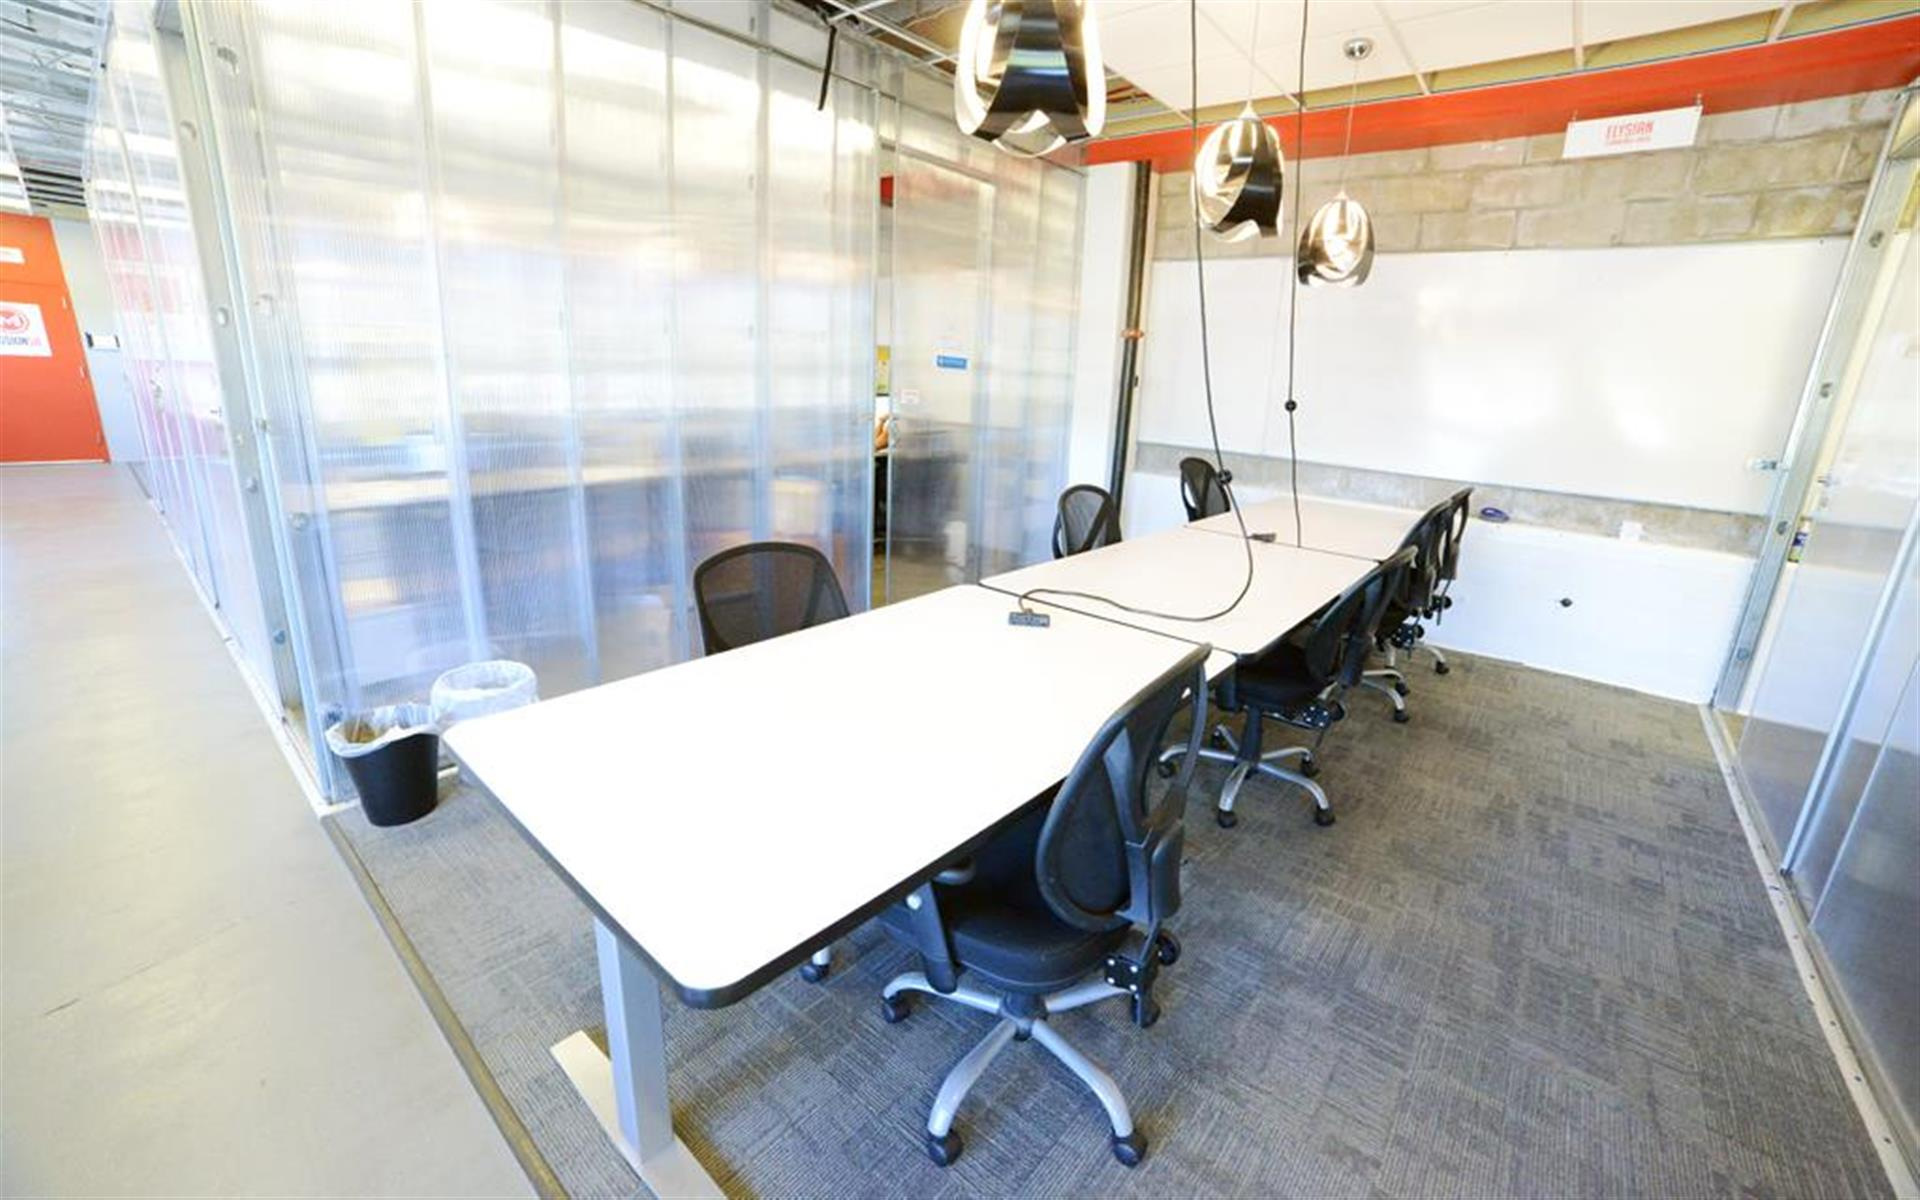 Mission 50 - NJ's Premier Coworking Space - Open Desk Coworking Unlimited 24/7